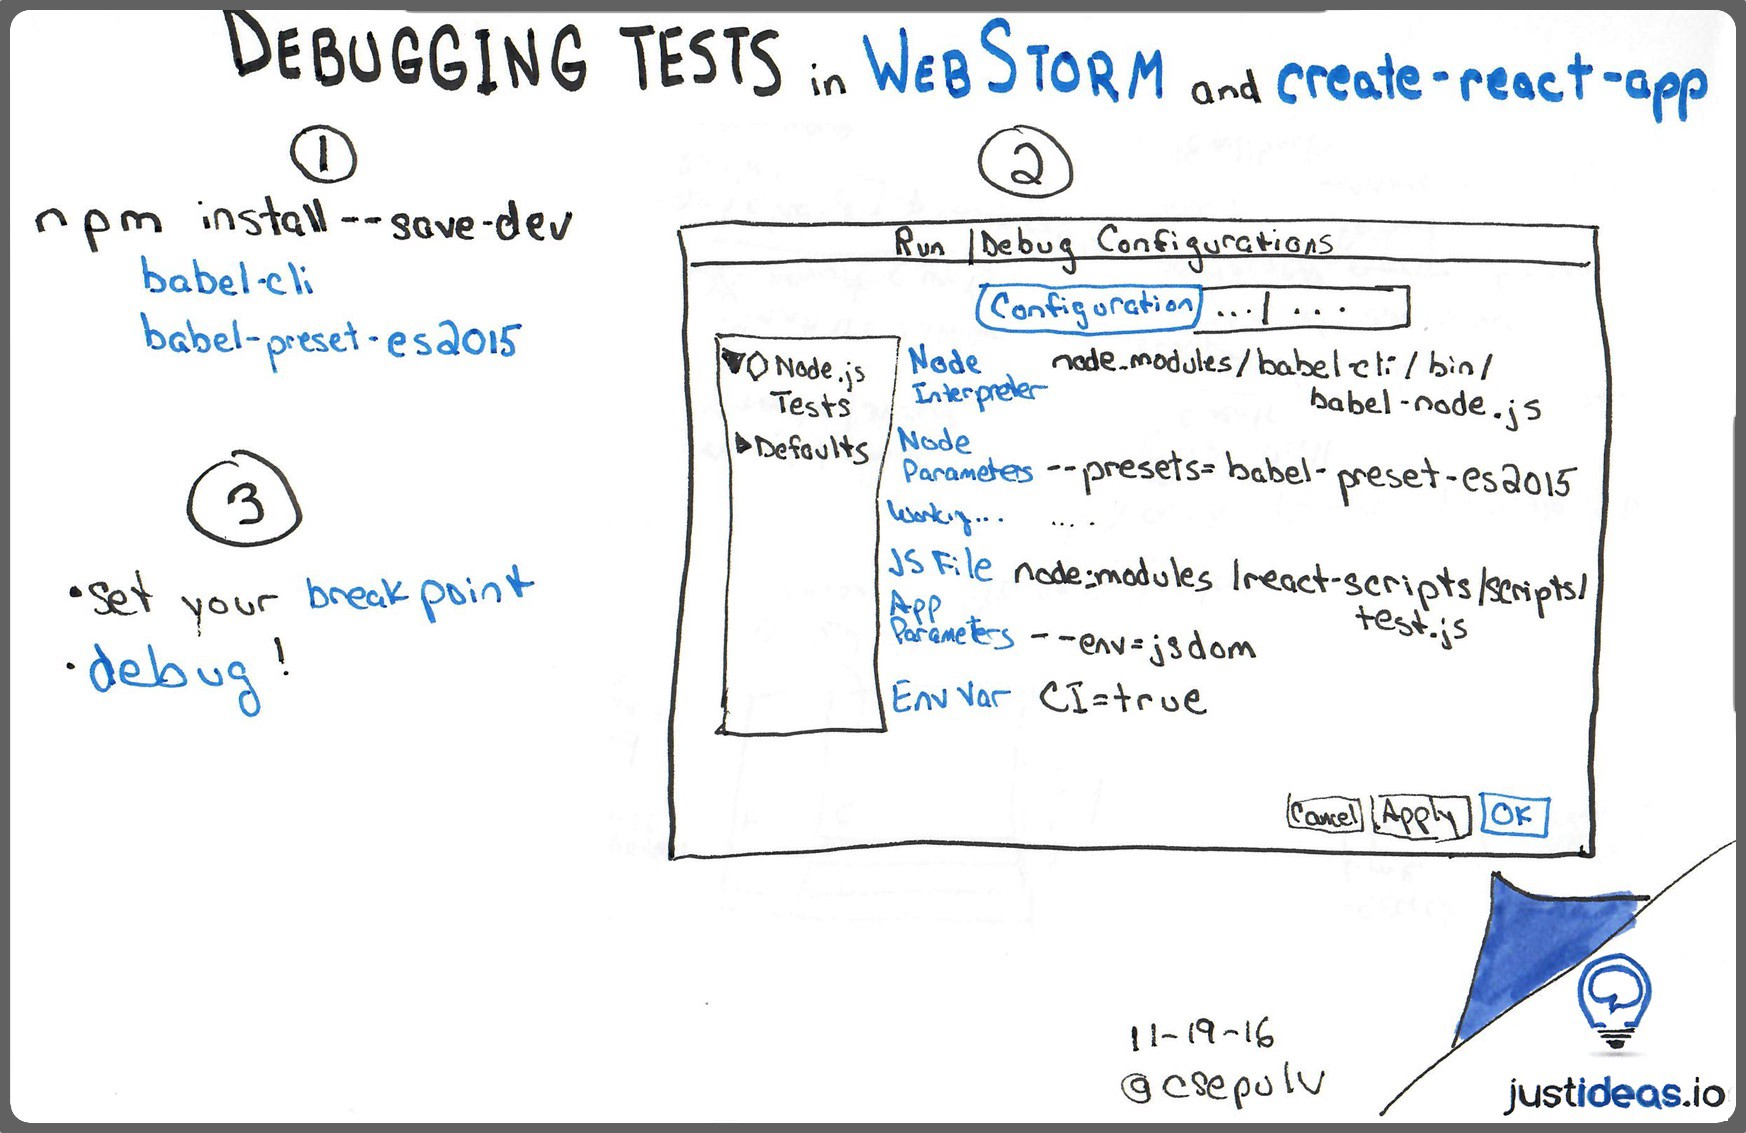 Debugging tests in WebStorm and create-react-app - justideas